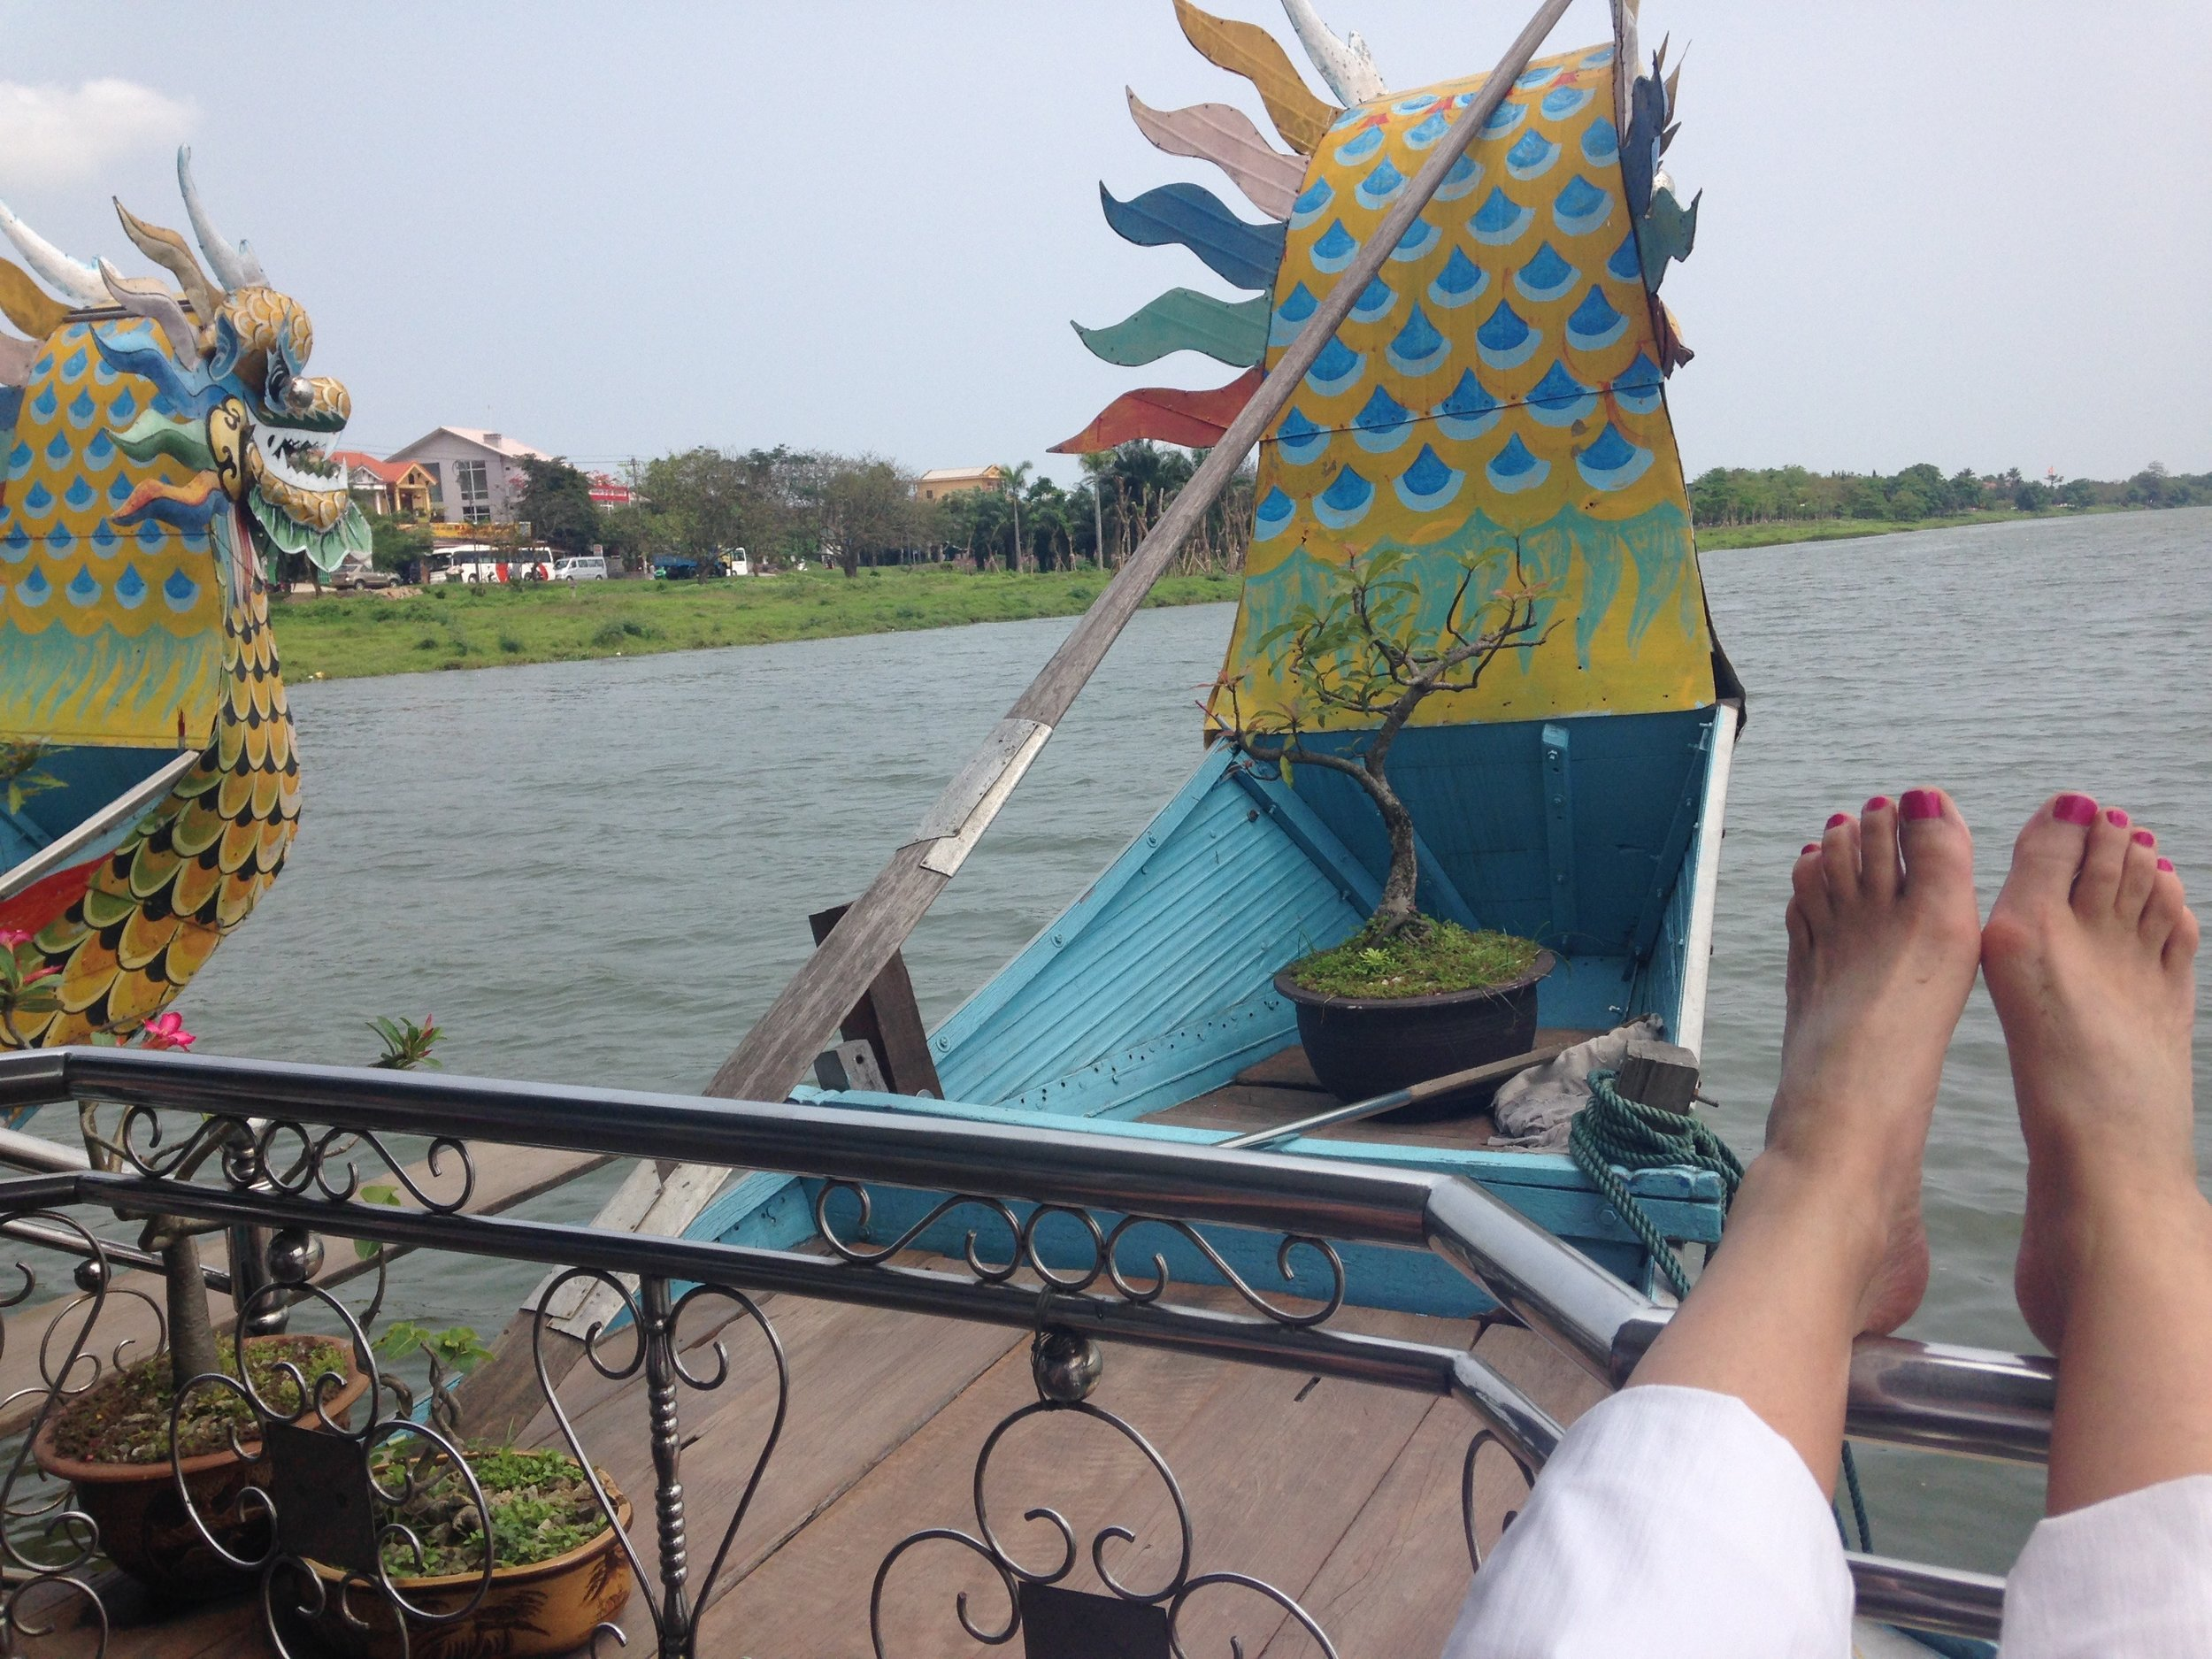 Well travelled feet. Meandering down the Mekong